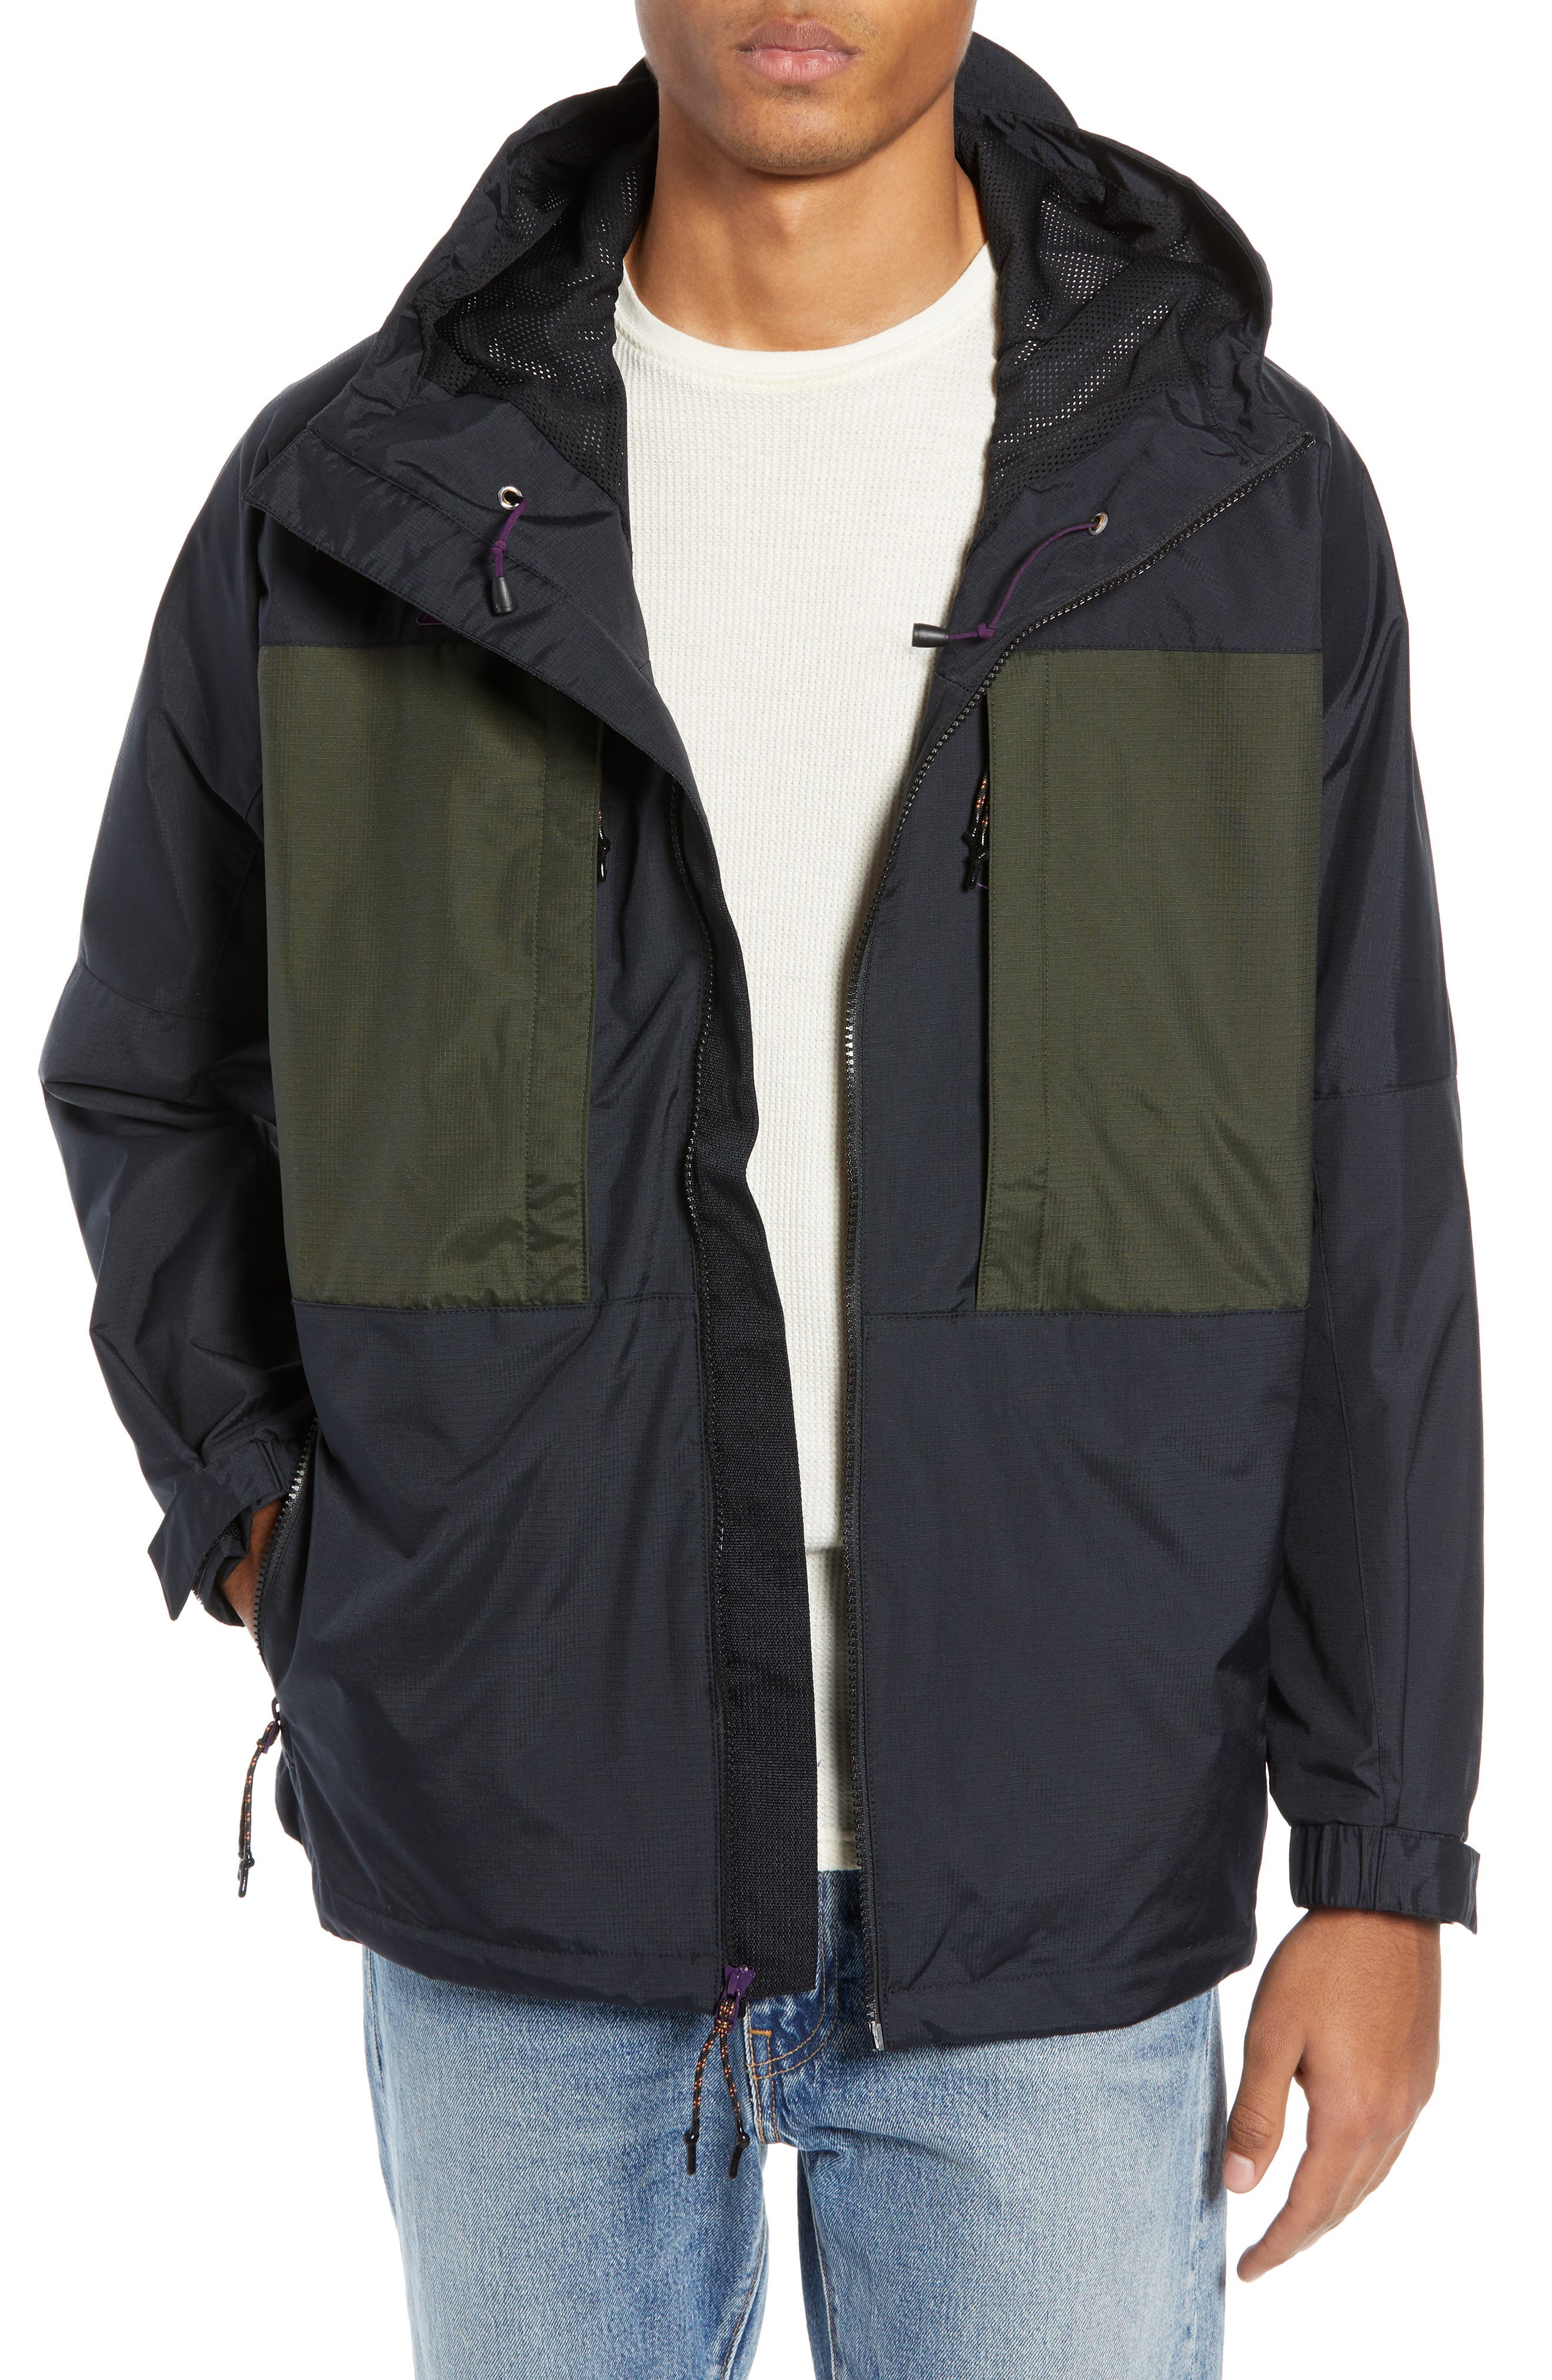 ACG Men's Anorak Jacket,                             Main thumbnail 1, color,                             BLACK/ SEQUOIA/ BLACK